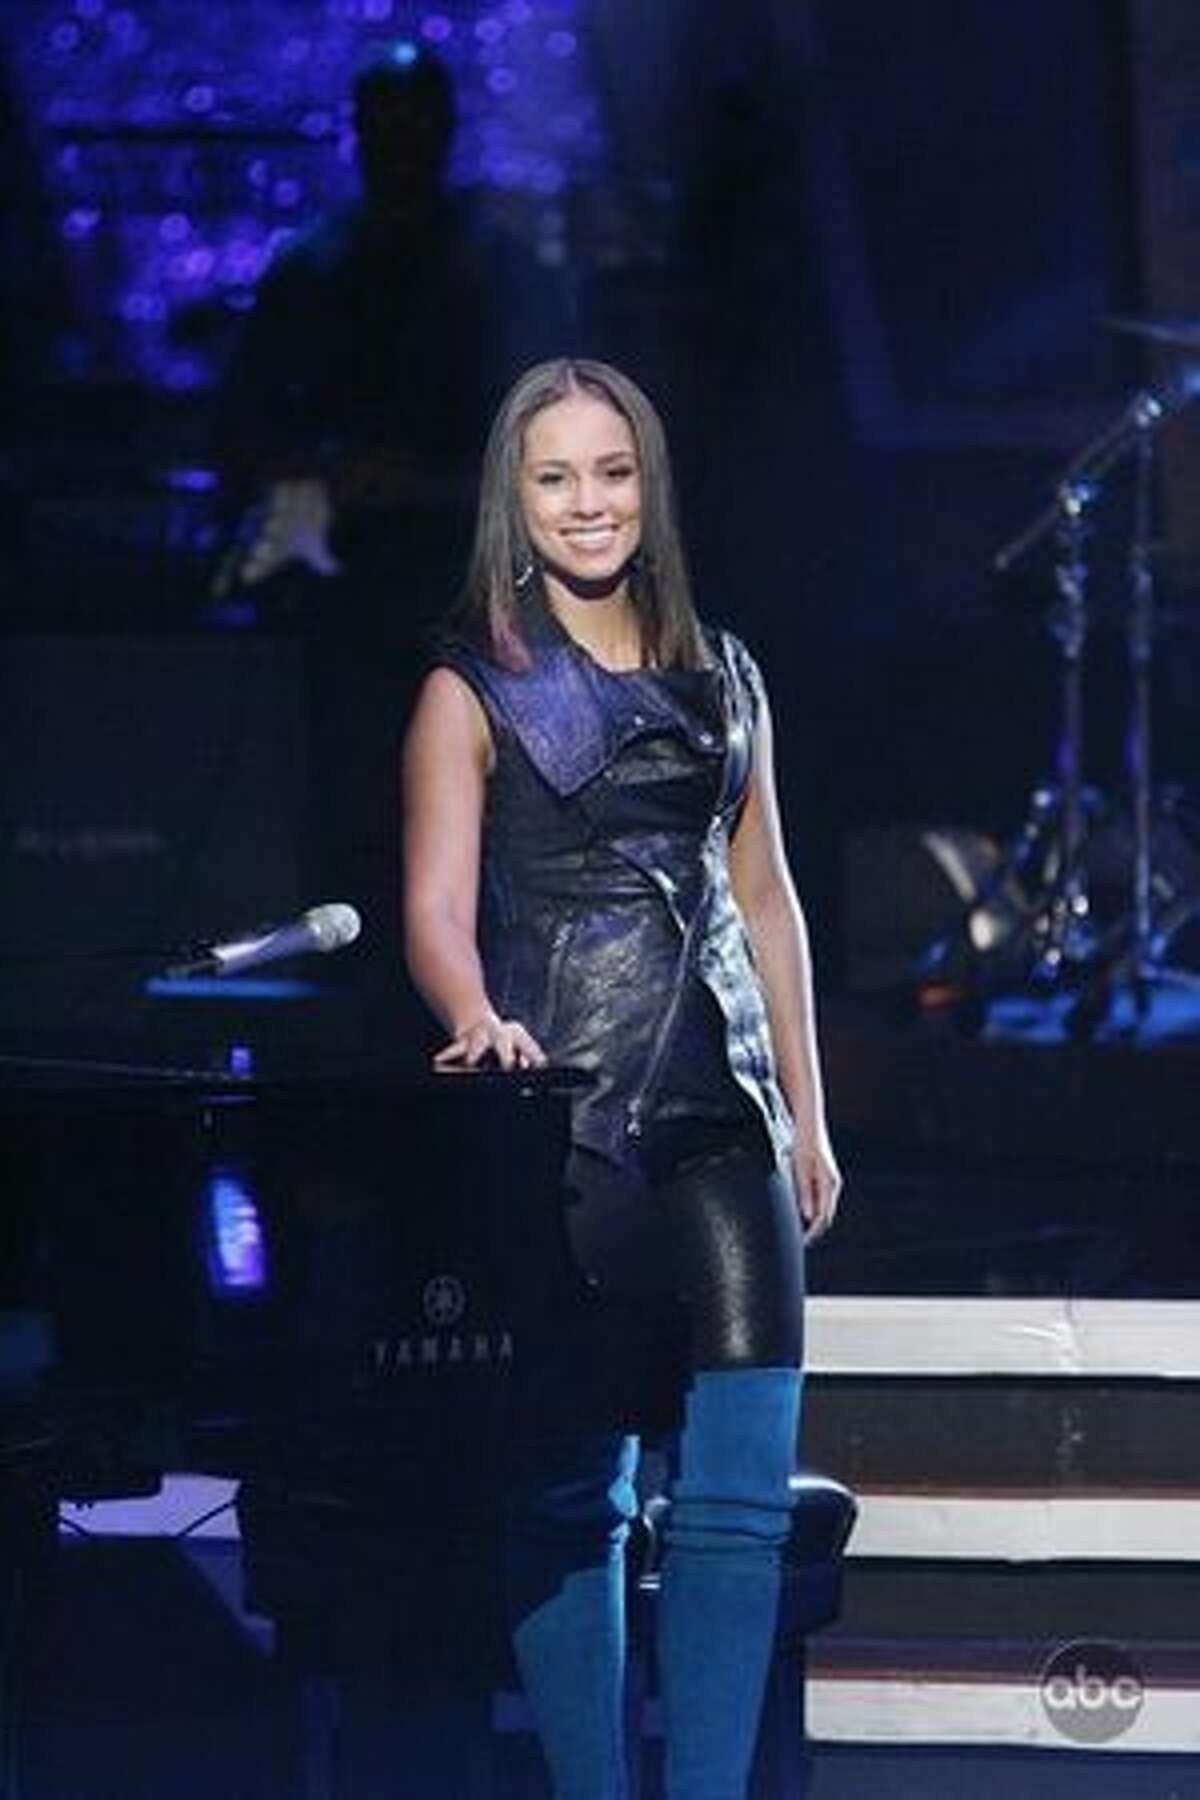 Recording artist Alicia Keys performed on Tuesday's results show.